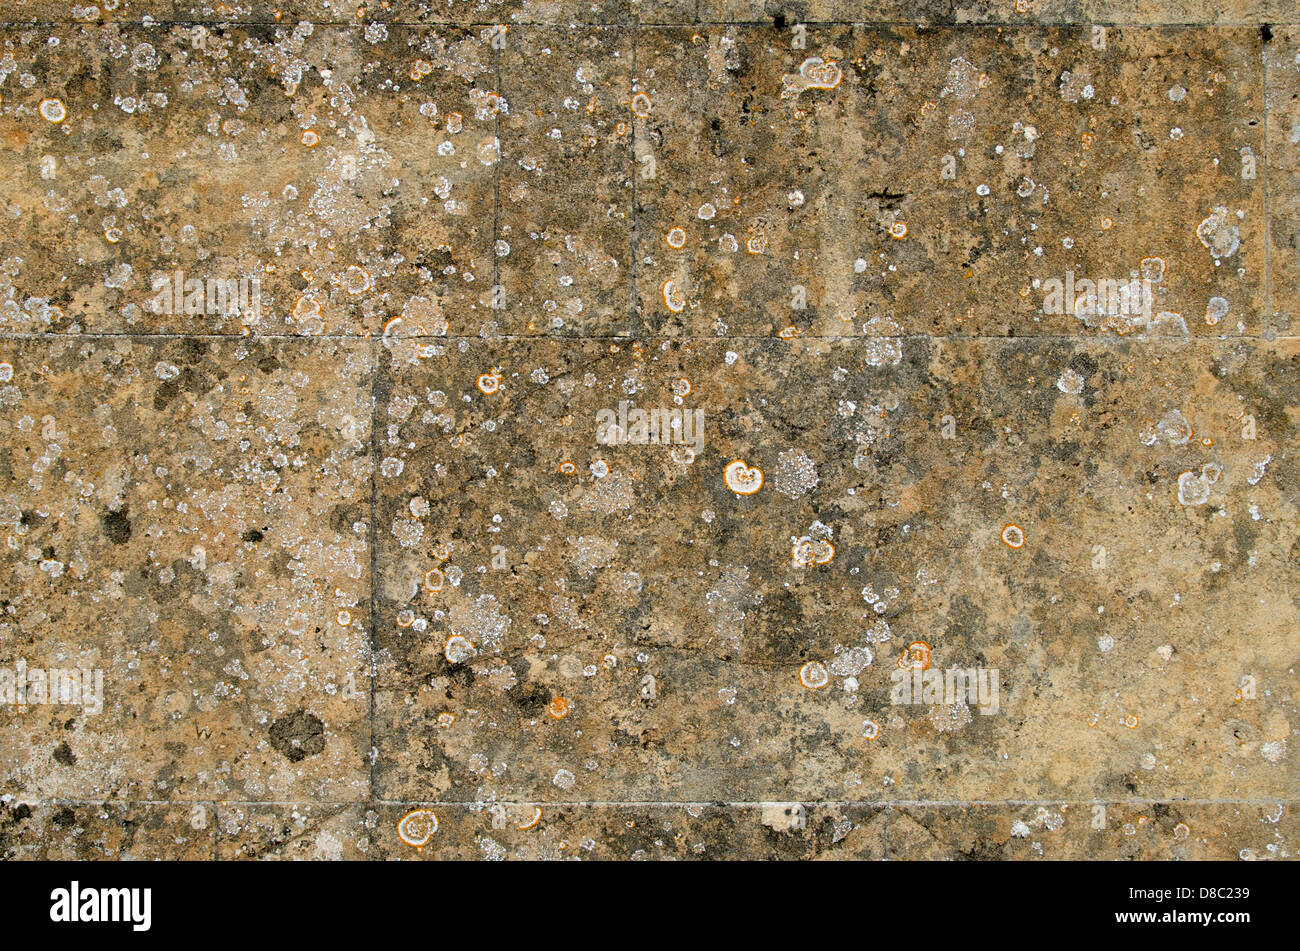 Lichen on weathered stone wall - Stock Image